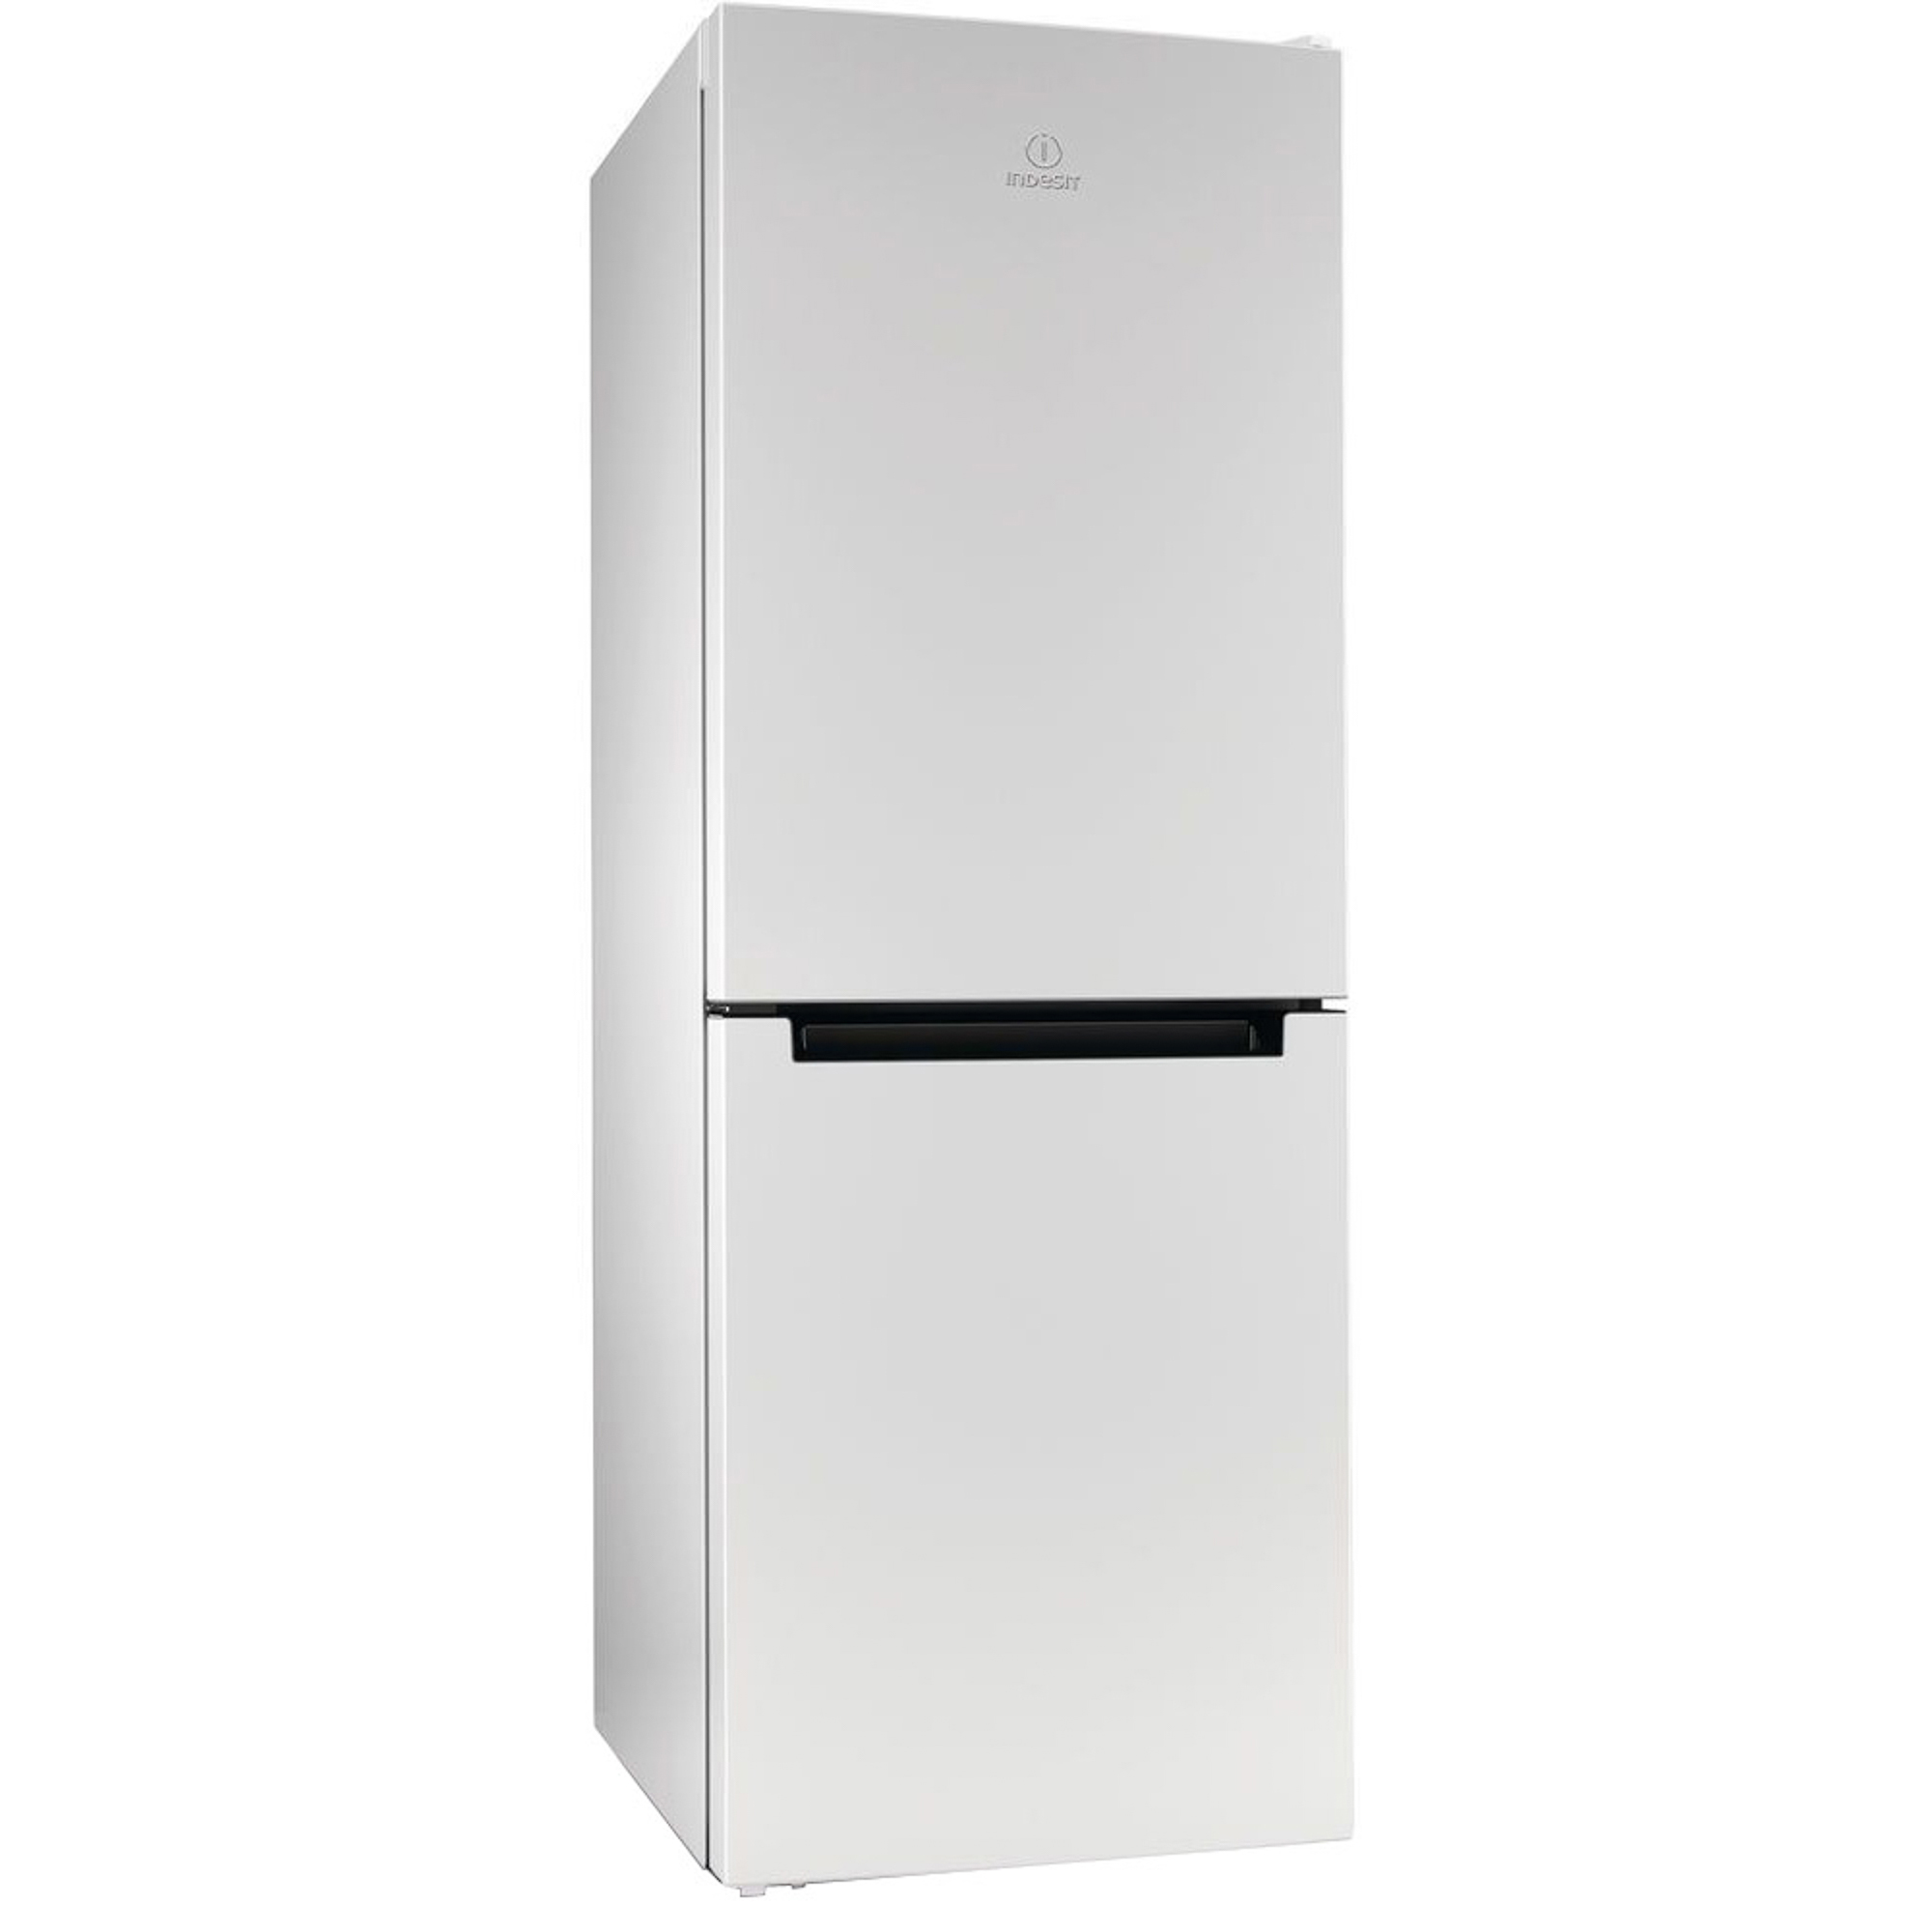 Холодильник Indesit DF 4160 W White фото